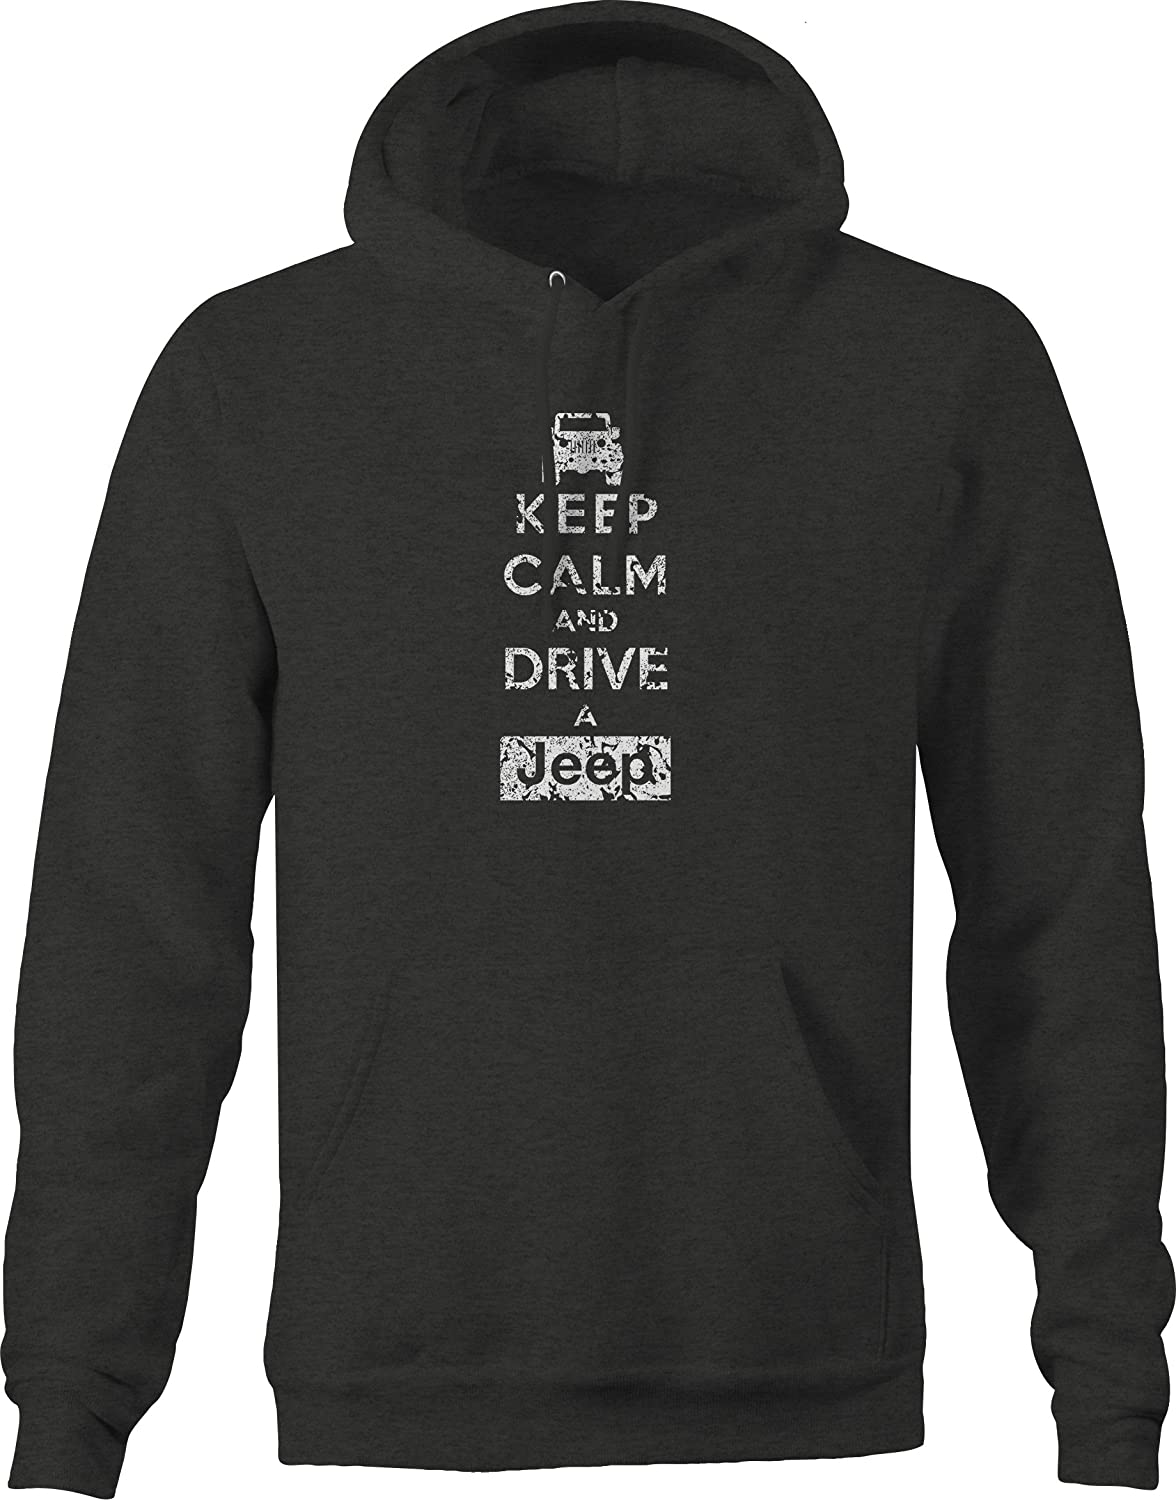 Lifestyle Graphix Distressed Keep Calm and Drive 4 x 4 OutdoorHoodies for Men